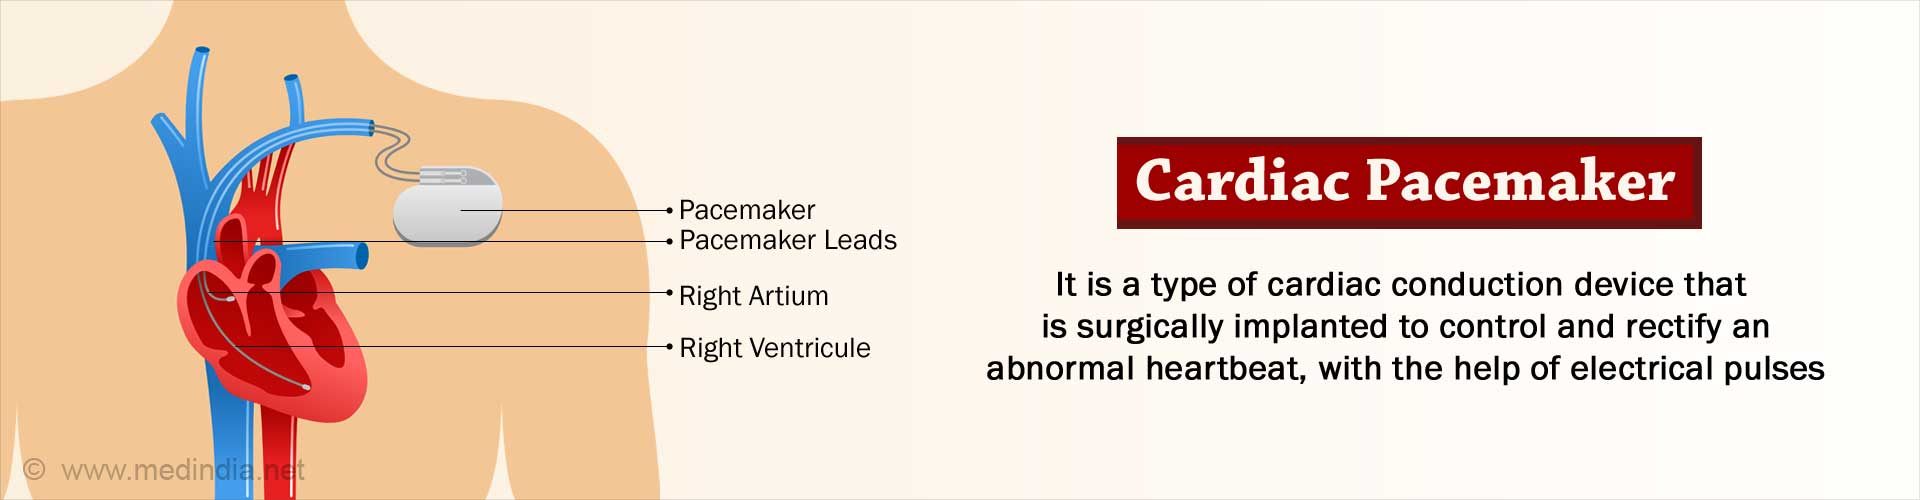 Cardiac Pacemaker for Abnormal Heart Rhythms – Types, Advantages, Risks